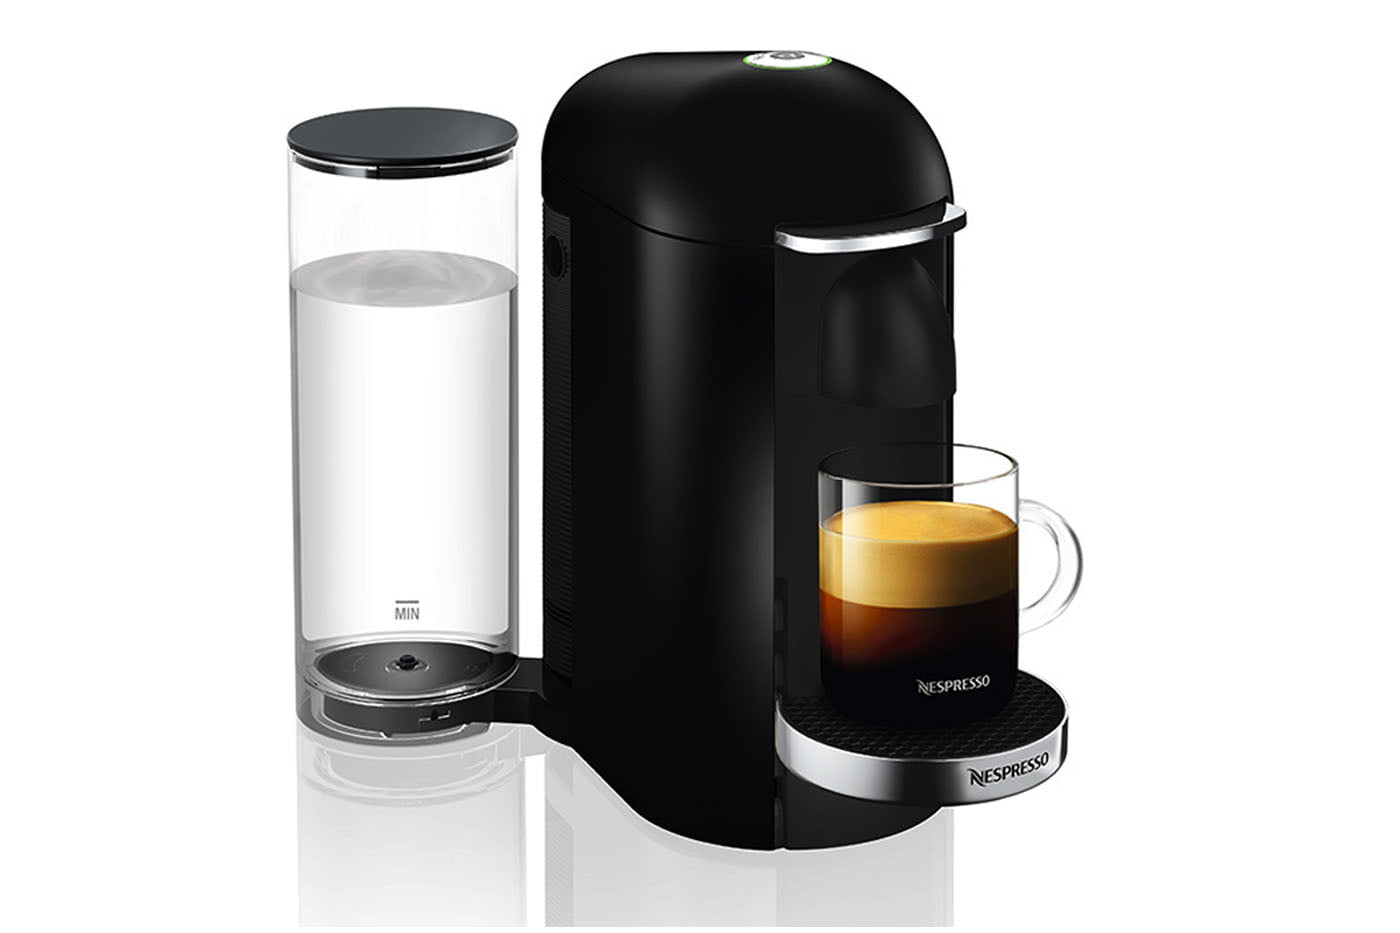 What We Think of The Nespresso Vertuo Plus Coffee Machine